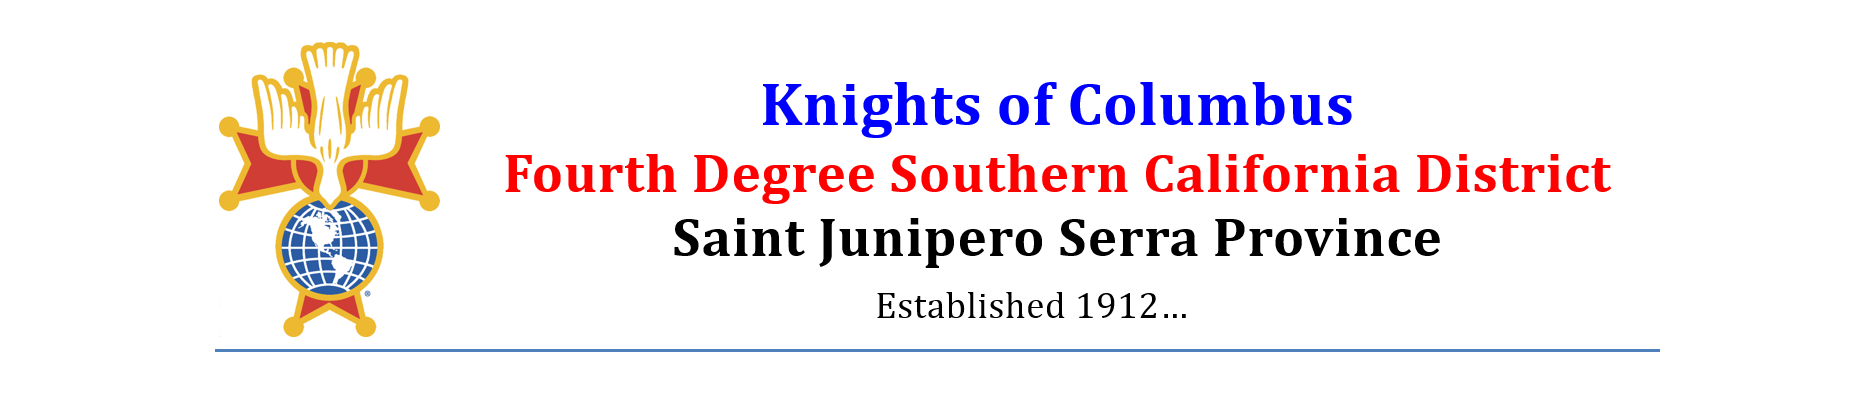 Knights of Columbus - Fourth Degree - Southern California District